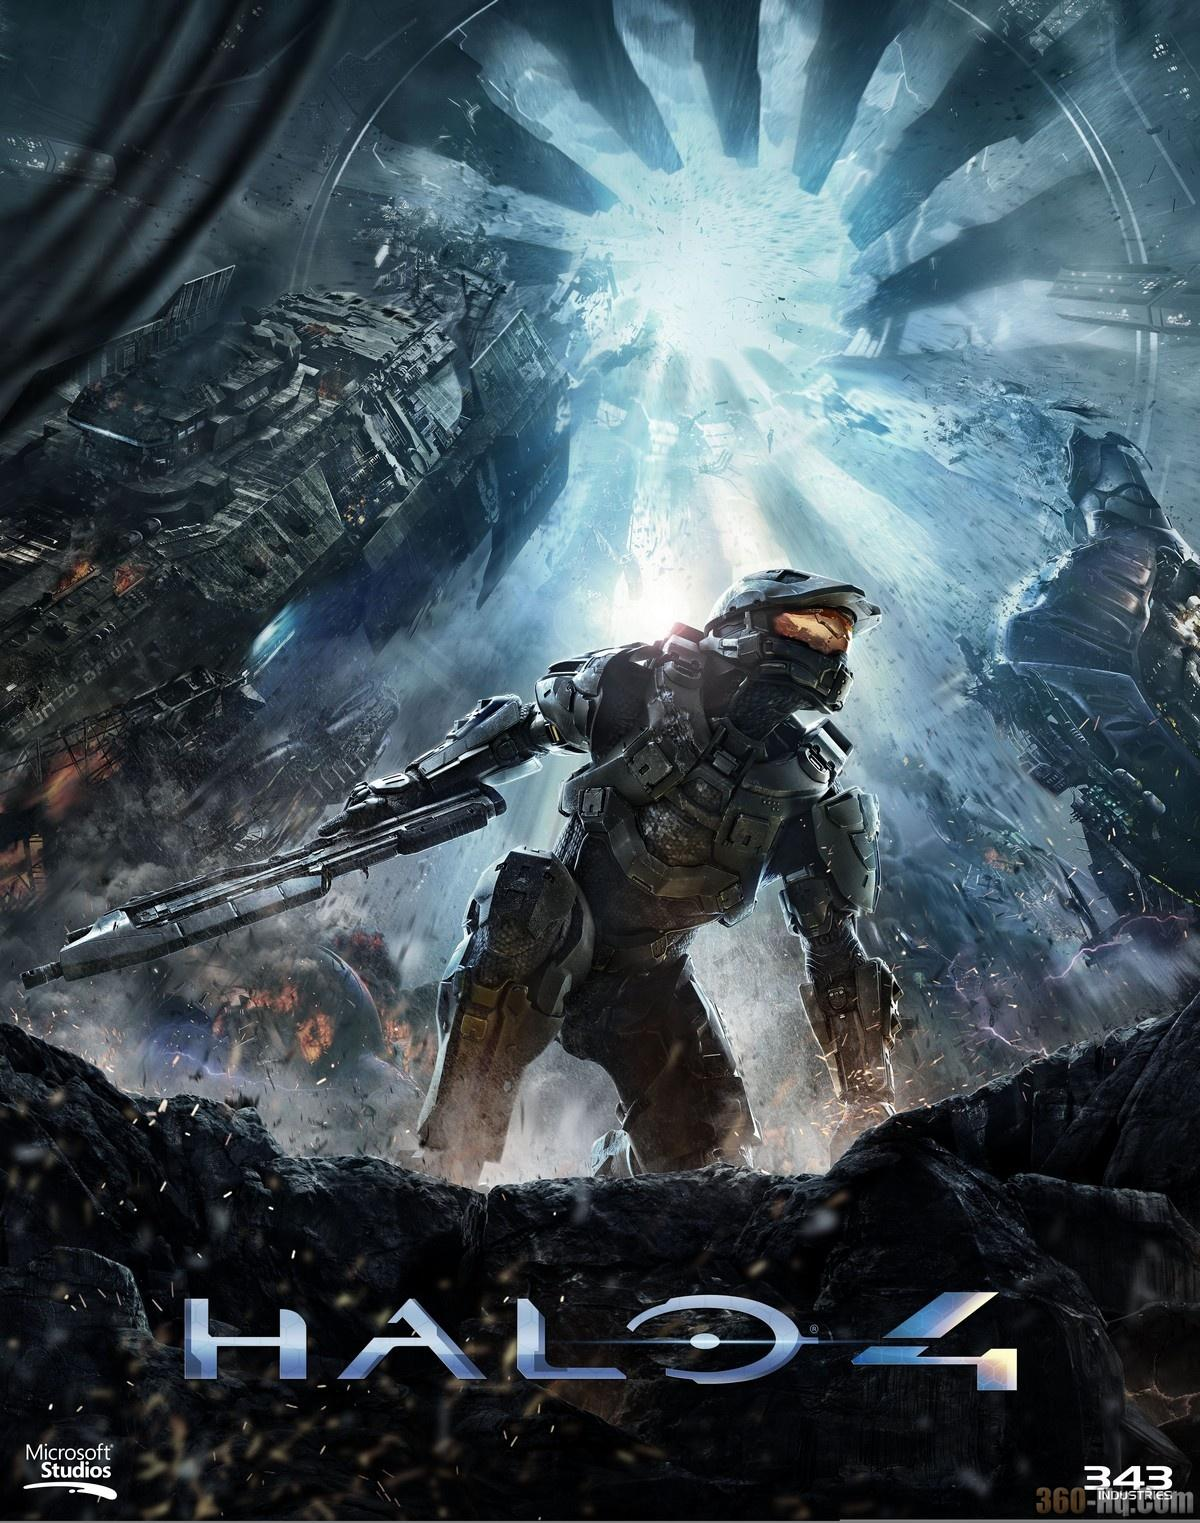 Halo 4 Screenshot 24176